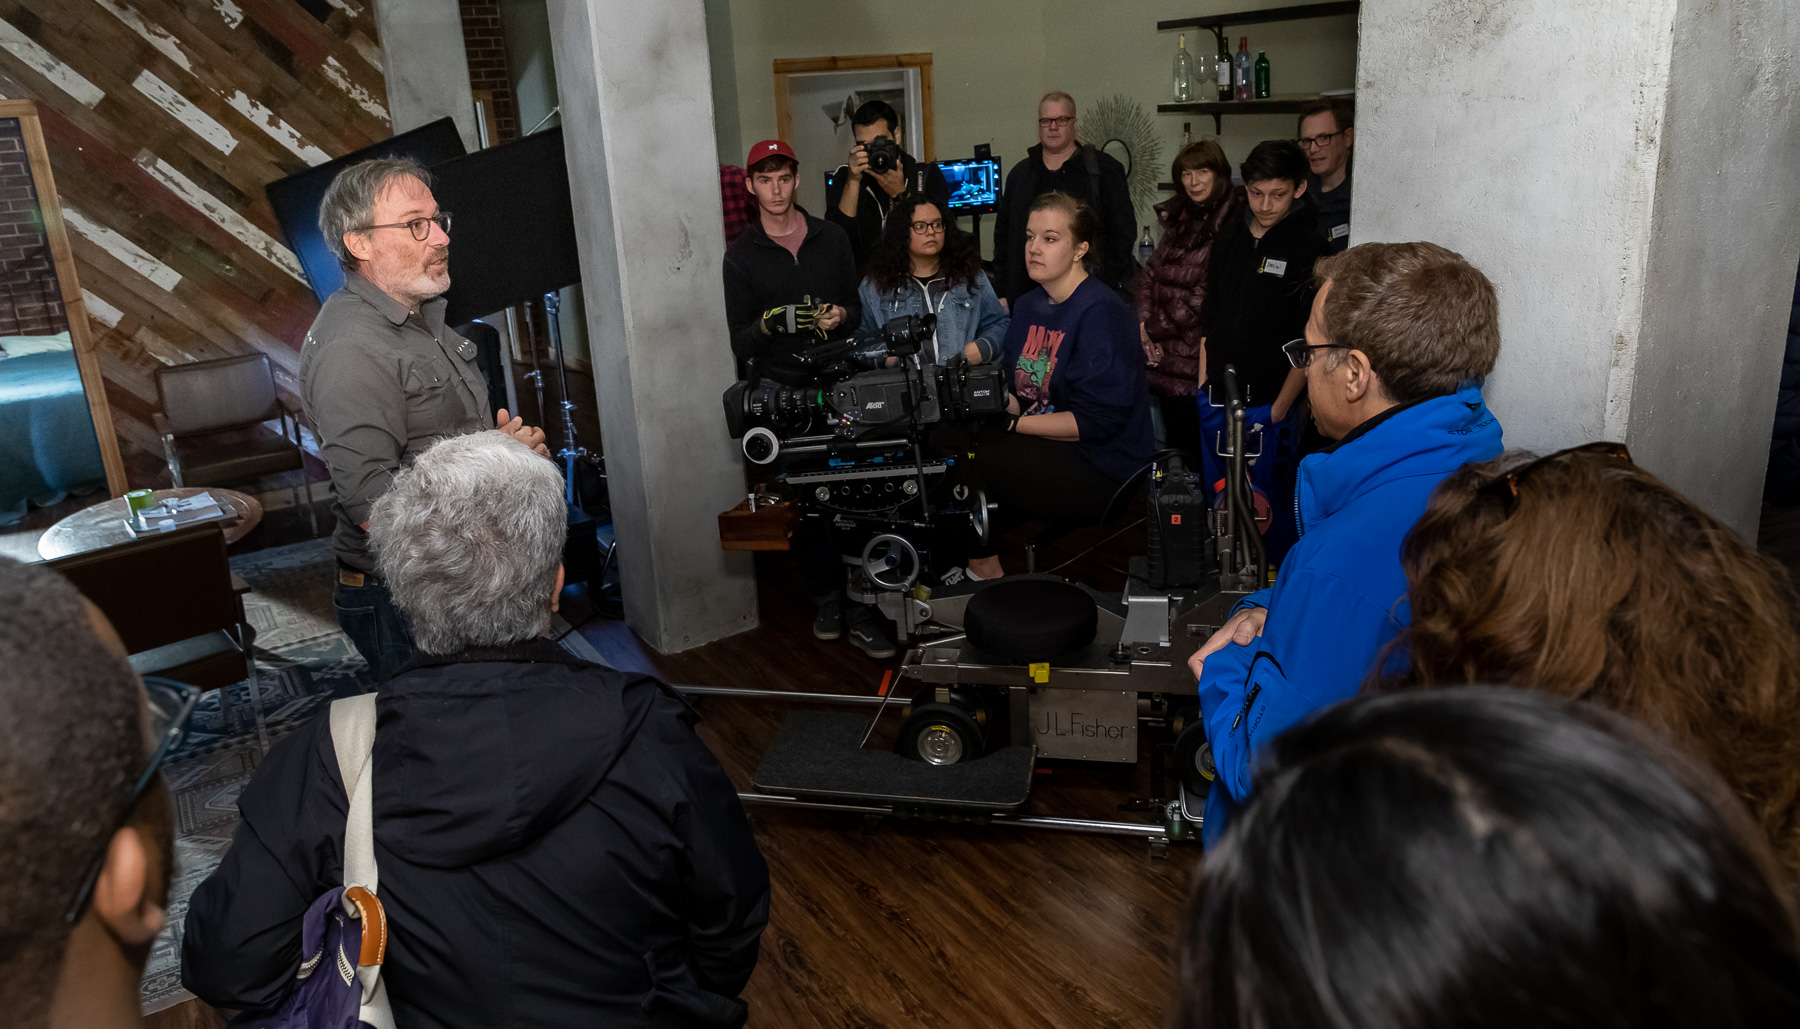 Pete Biagi, cinematographer in residence in the College of Computing and Digital Media, leads a demonstration of filming techniques during the Chicago Ideas Week Lab: Behind the Scenes at Cinespace with DePaul University, Monday, Oct. 14, 2019, at Cinespace Chicago Film Studios on Chicago's West Side. (DePaul University/Jeff Carrion)